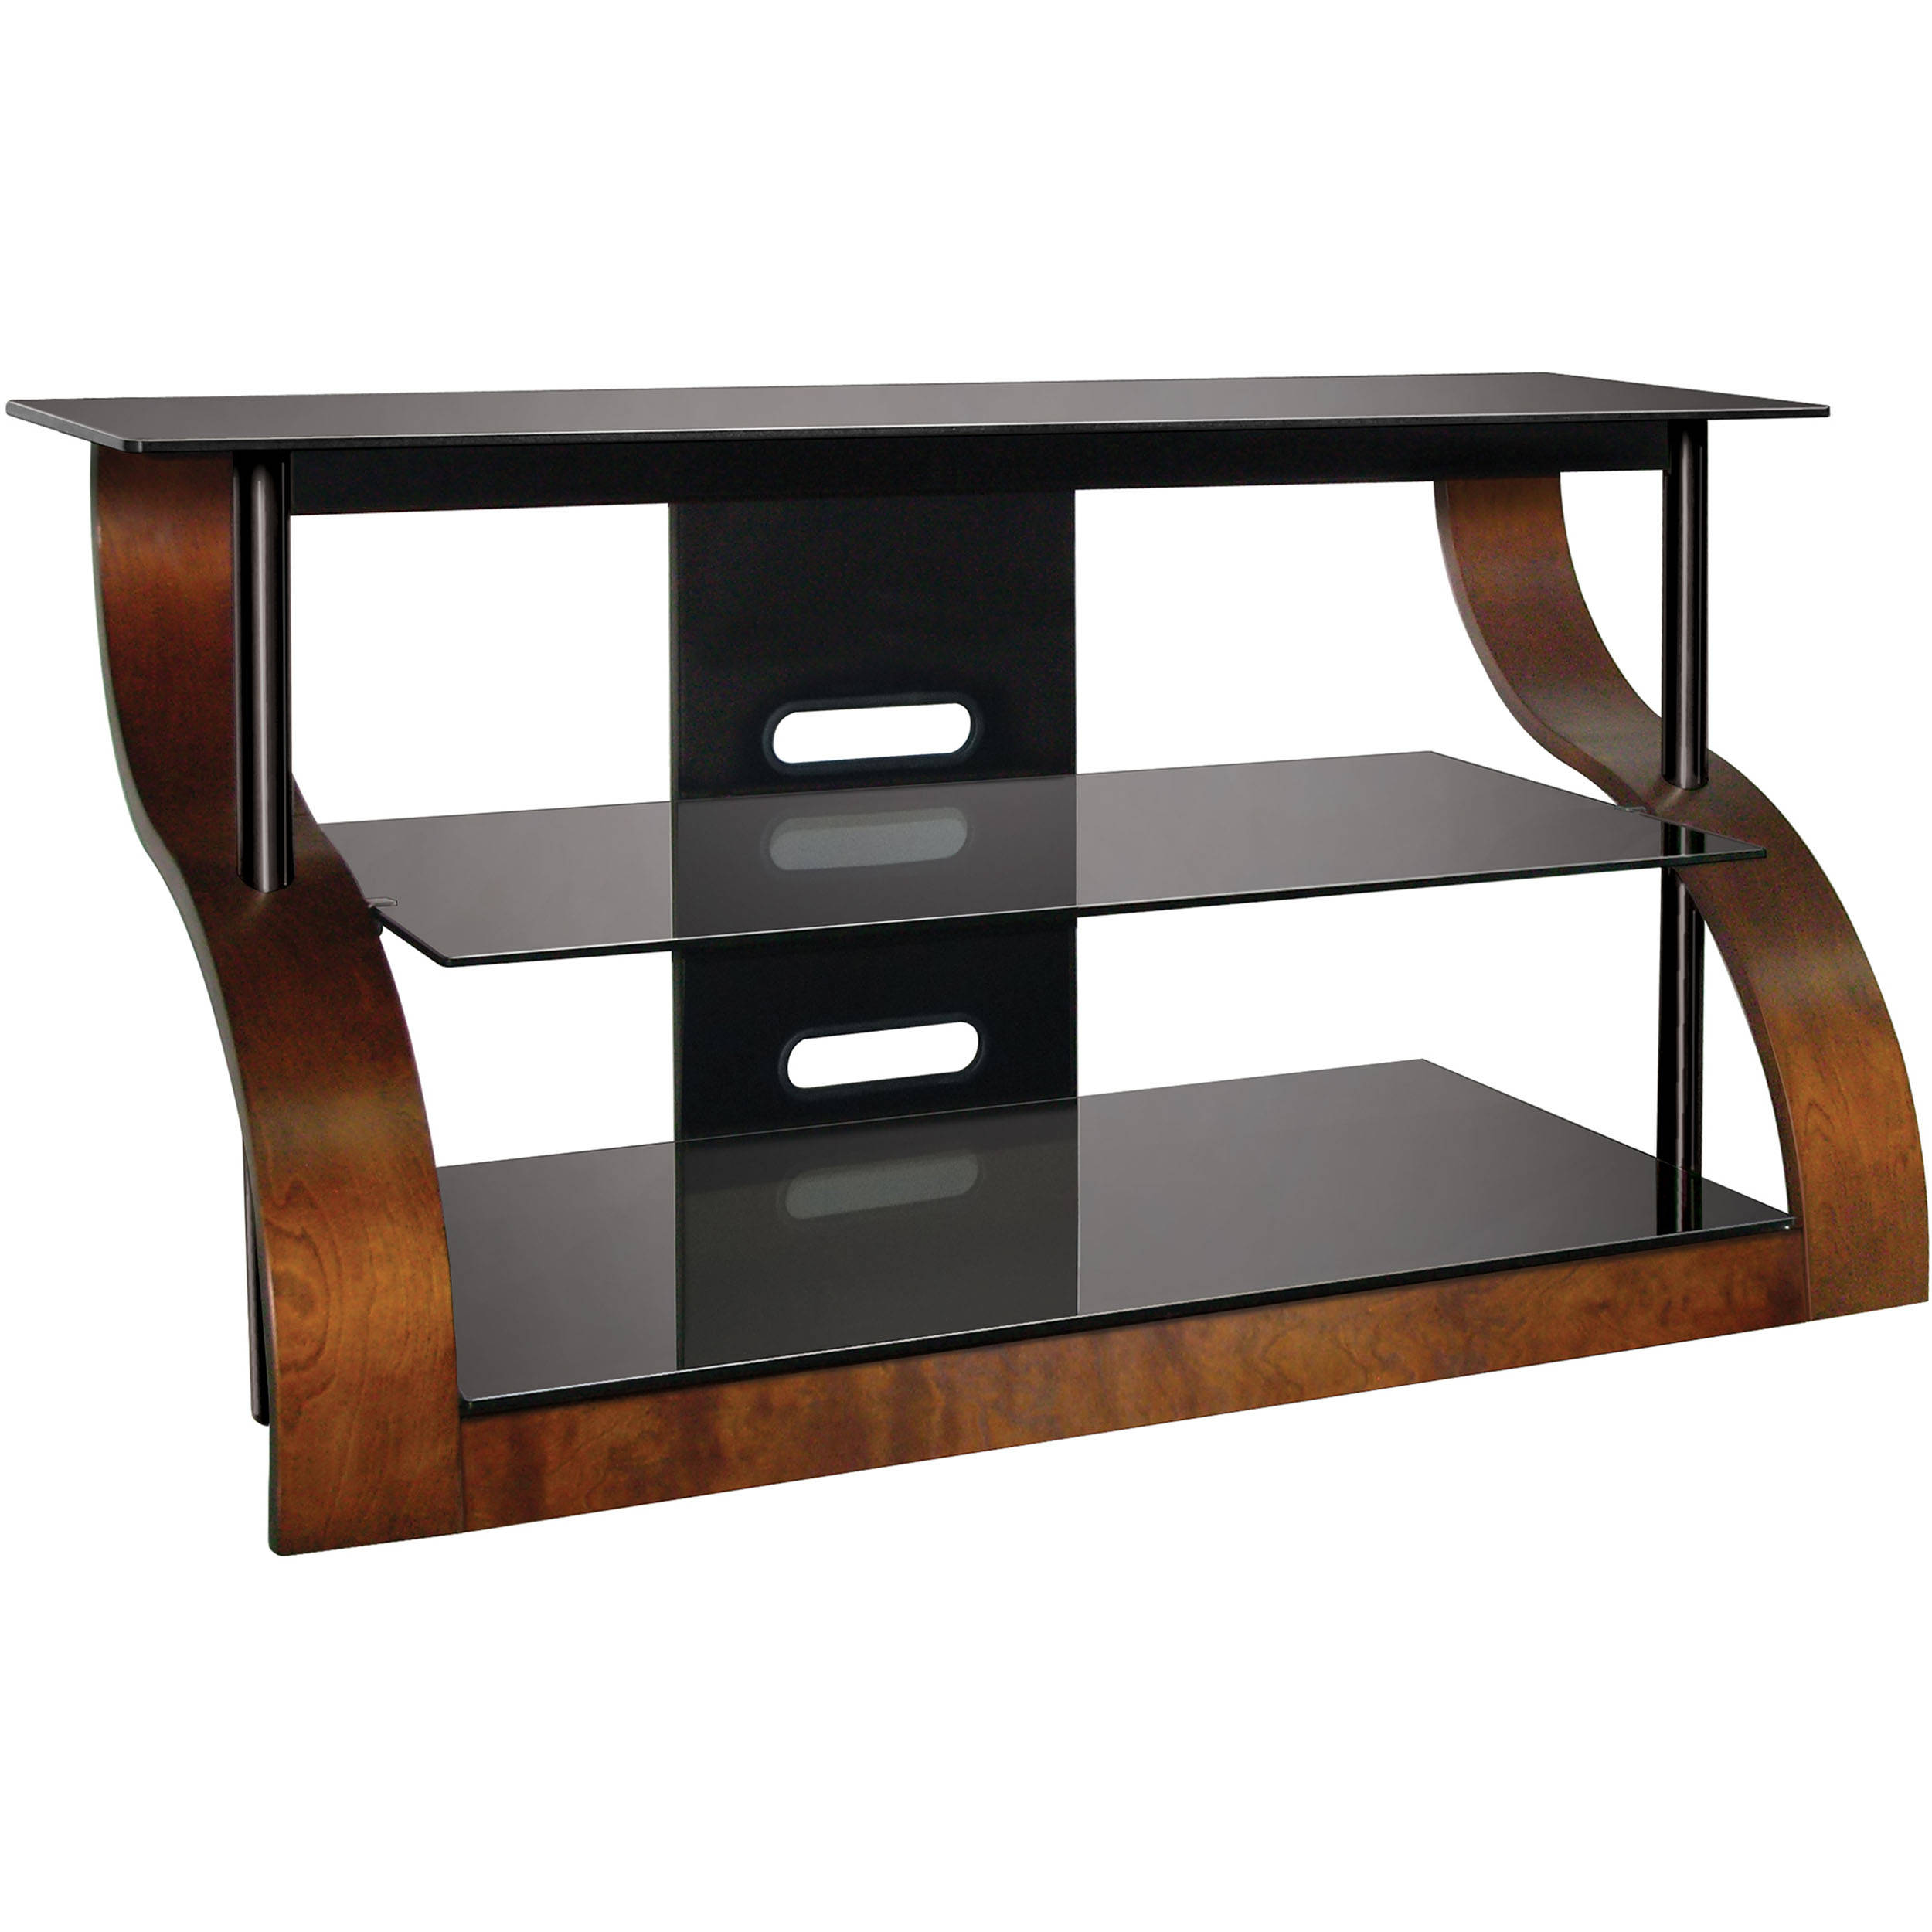 Bell 39 O Curved Wood A V Furniture In Vibrant Espresso Cw 342 B H